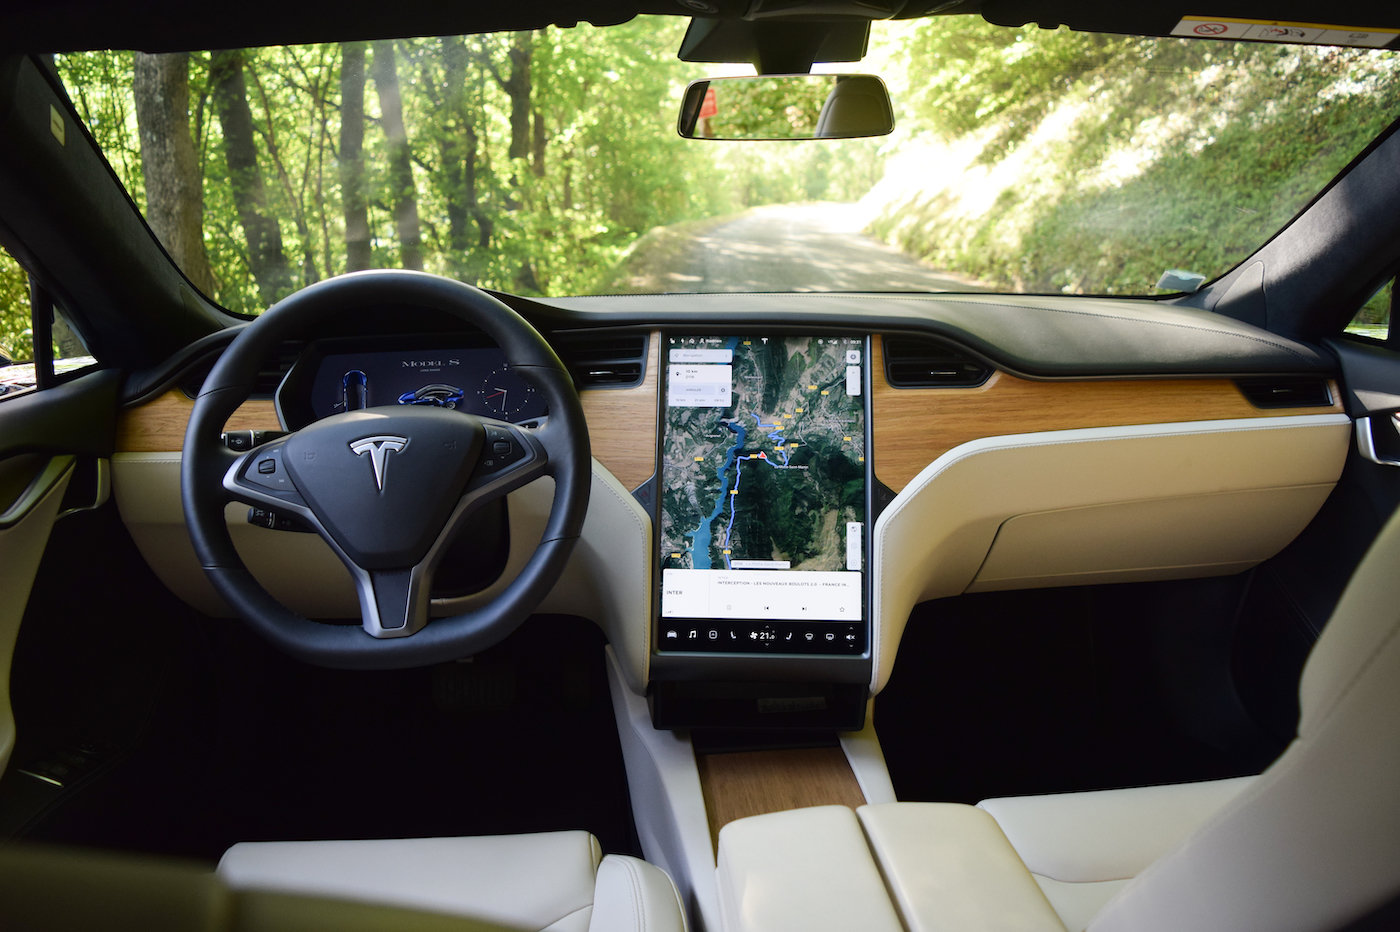 Tesla Model S habitacle